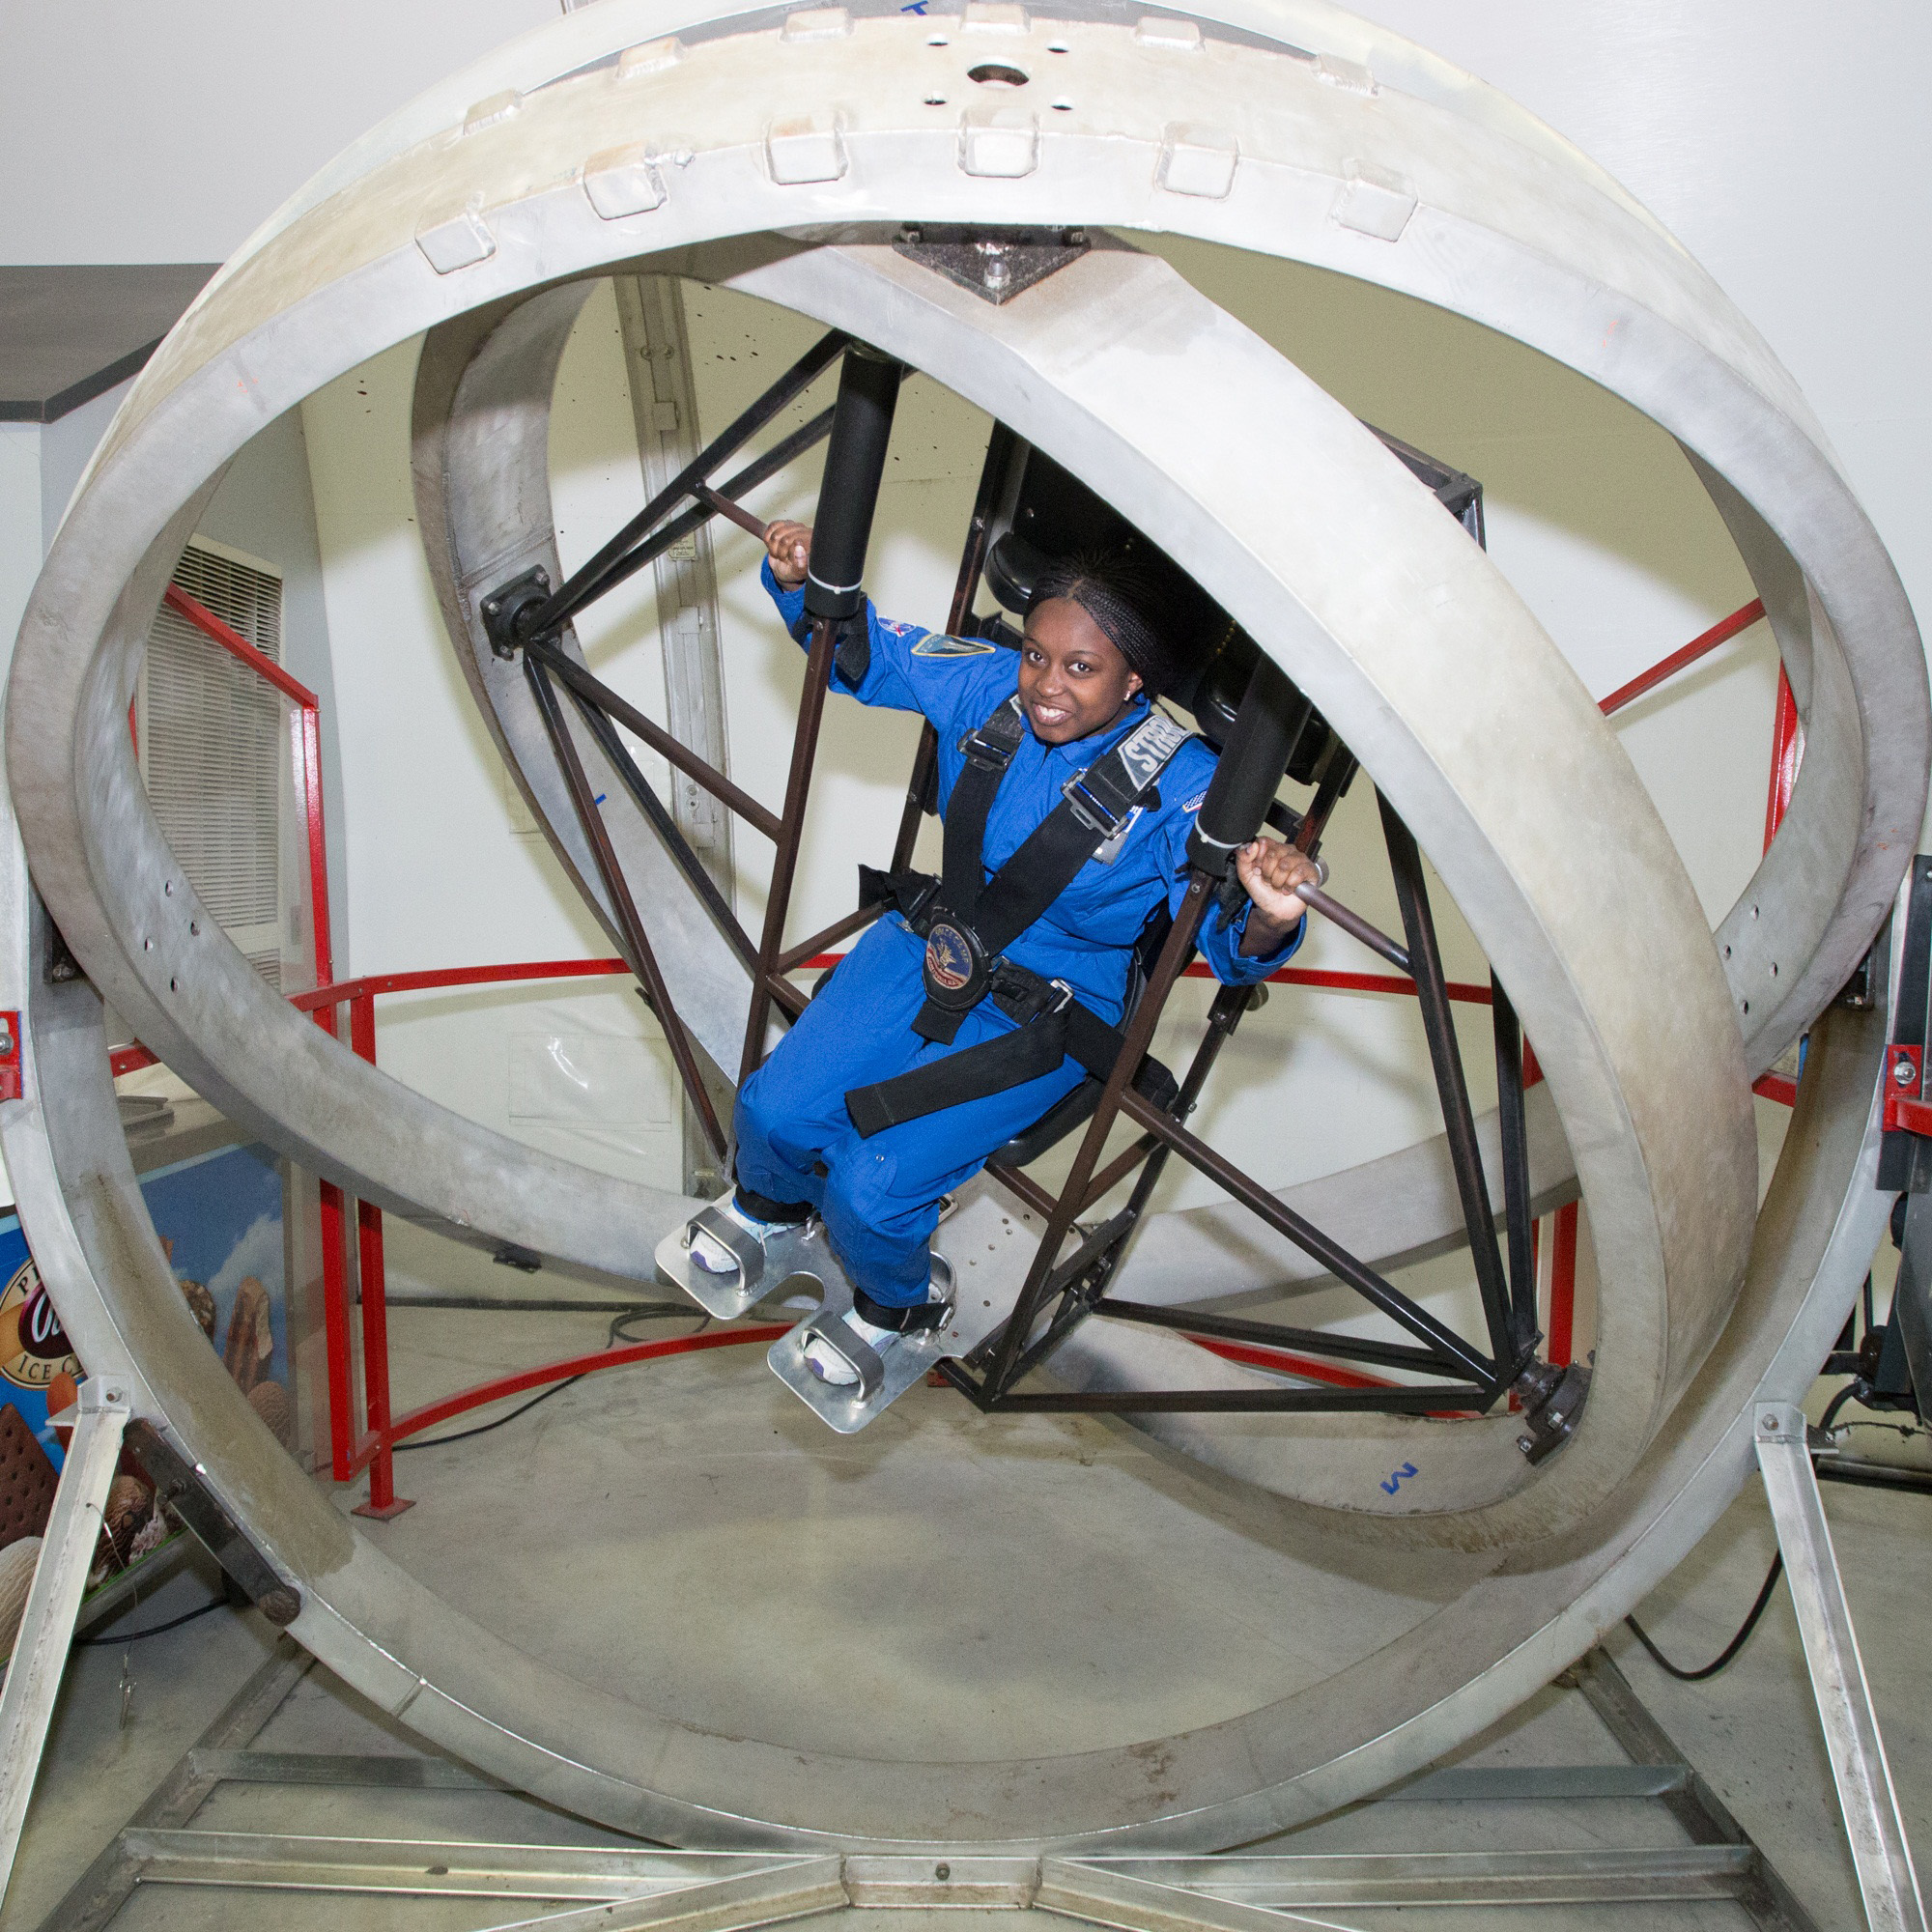 Honeywell Leadership Challenge Academy participants are able to go for a spin in simulated astronaut training exercises.